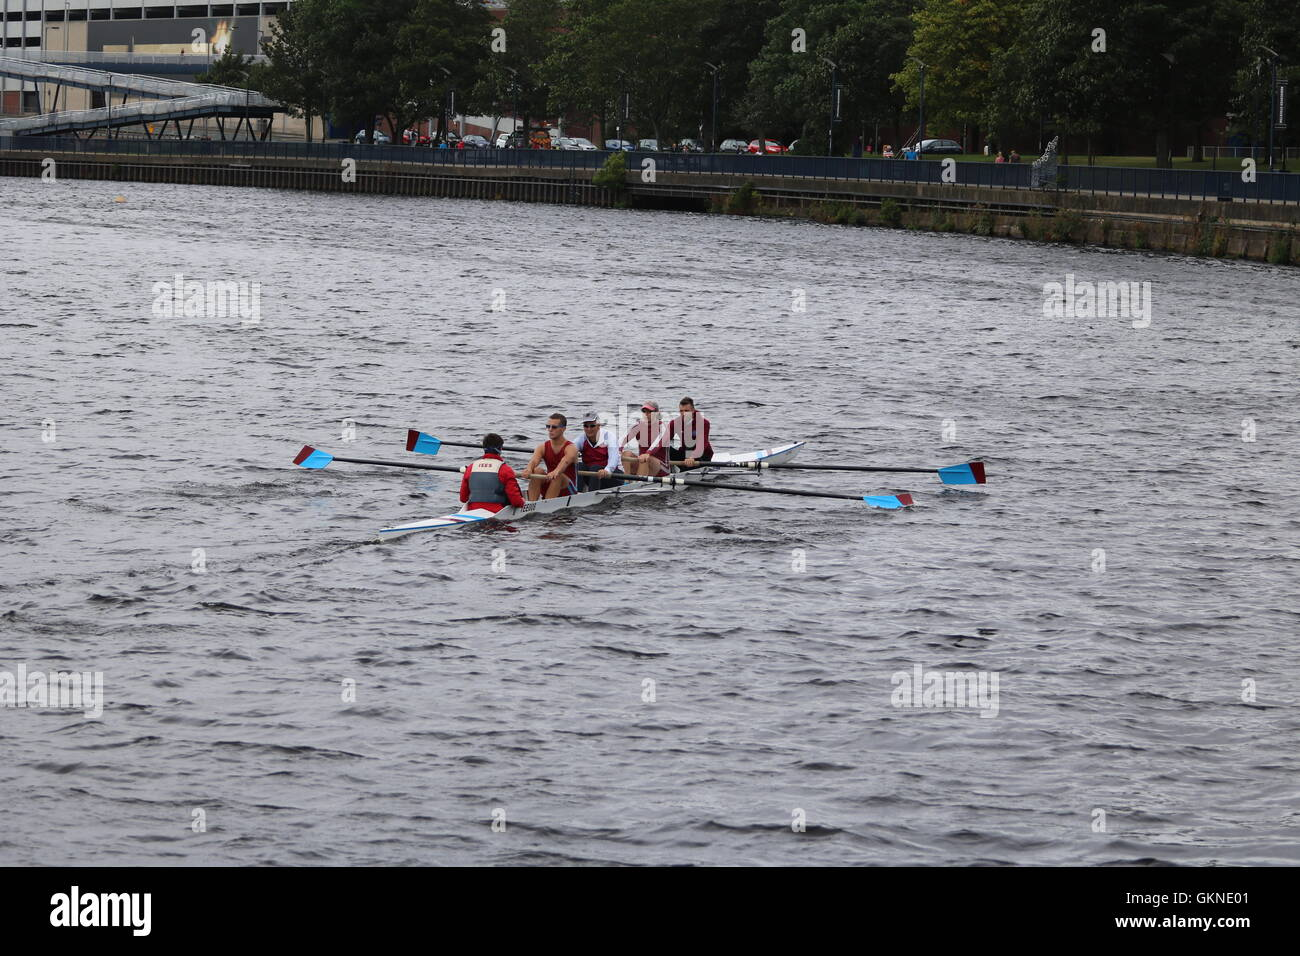 A coxed four of rowers on the River Tees at Stockton-on-Tees. - Stock Image